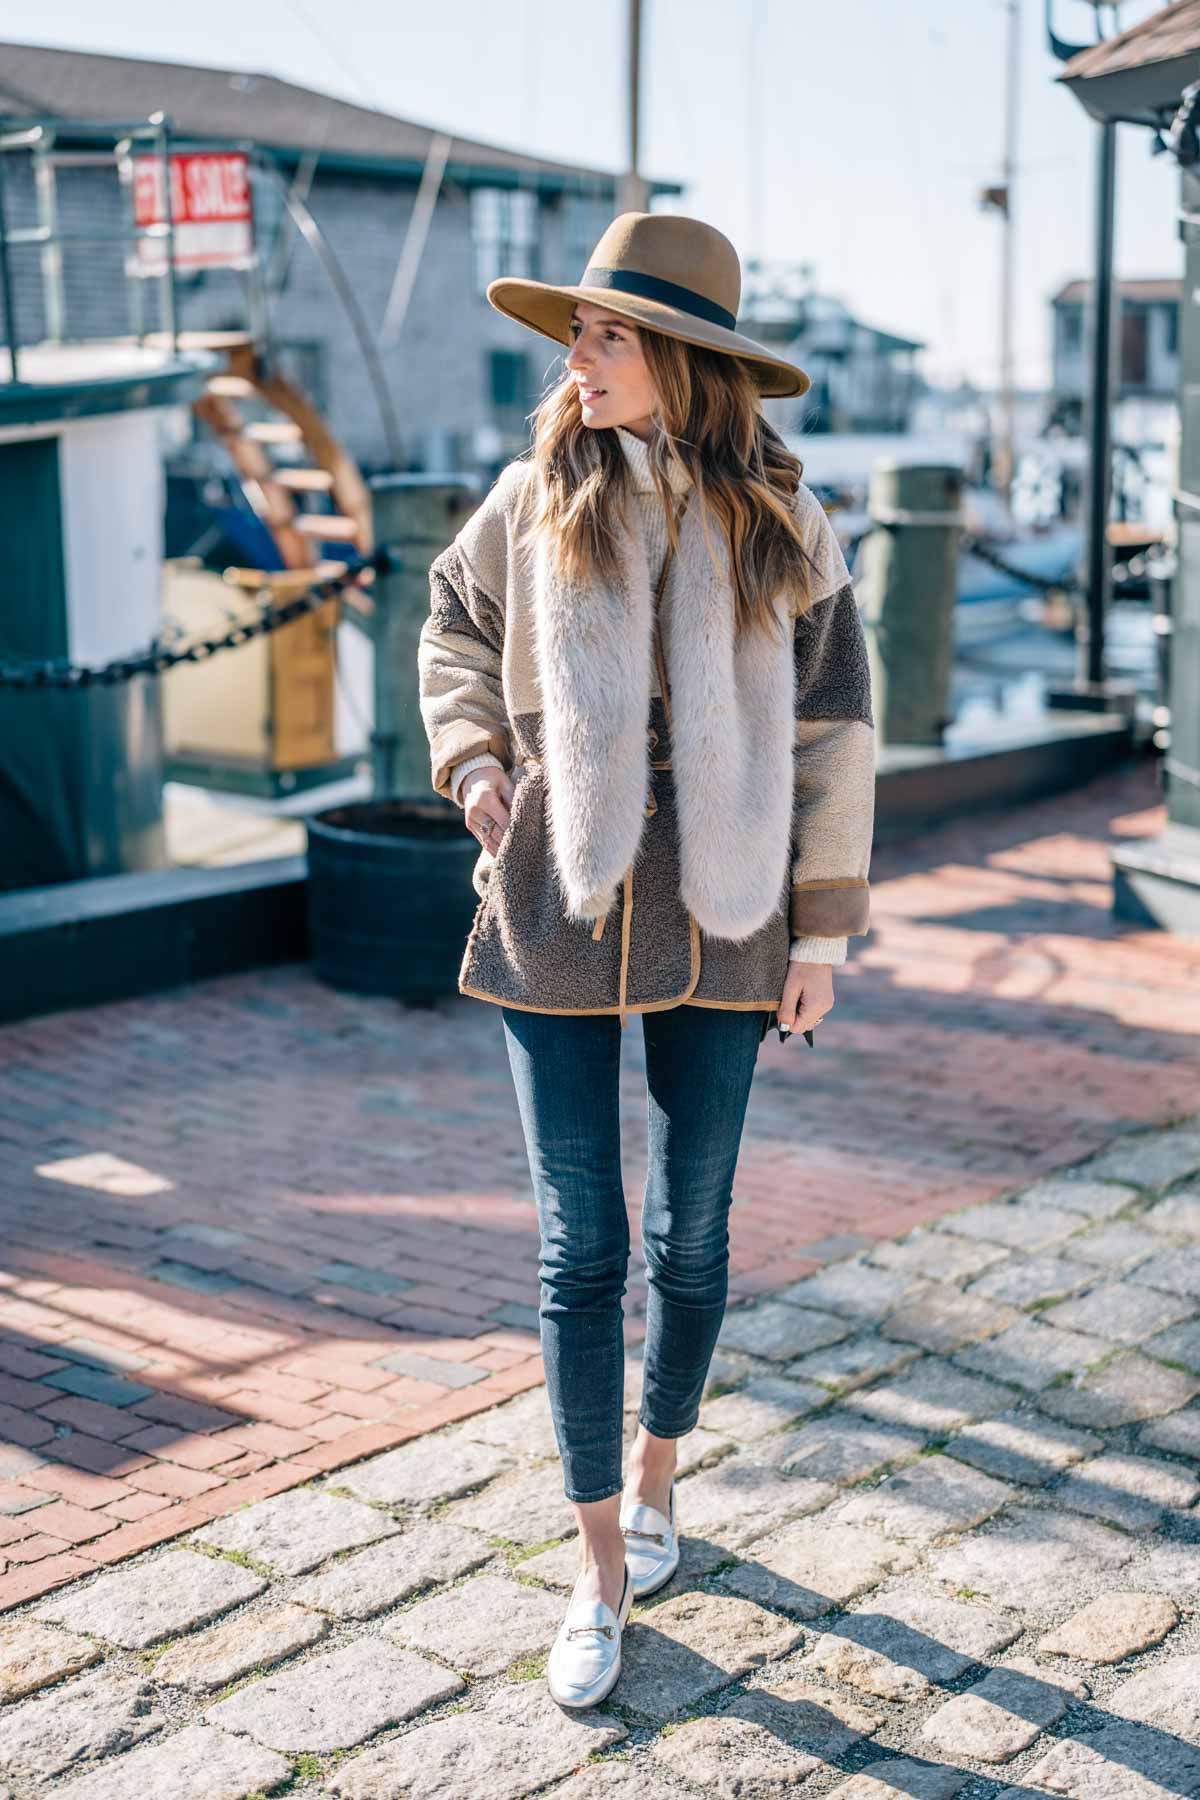 Jess Ann Kirby styles a faux fur scarf, skinny jeans and metallic loafers for a casual holiday look in Newport Rhode Island